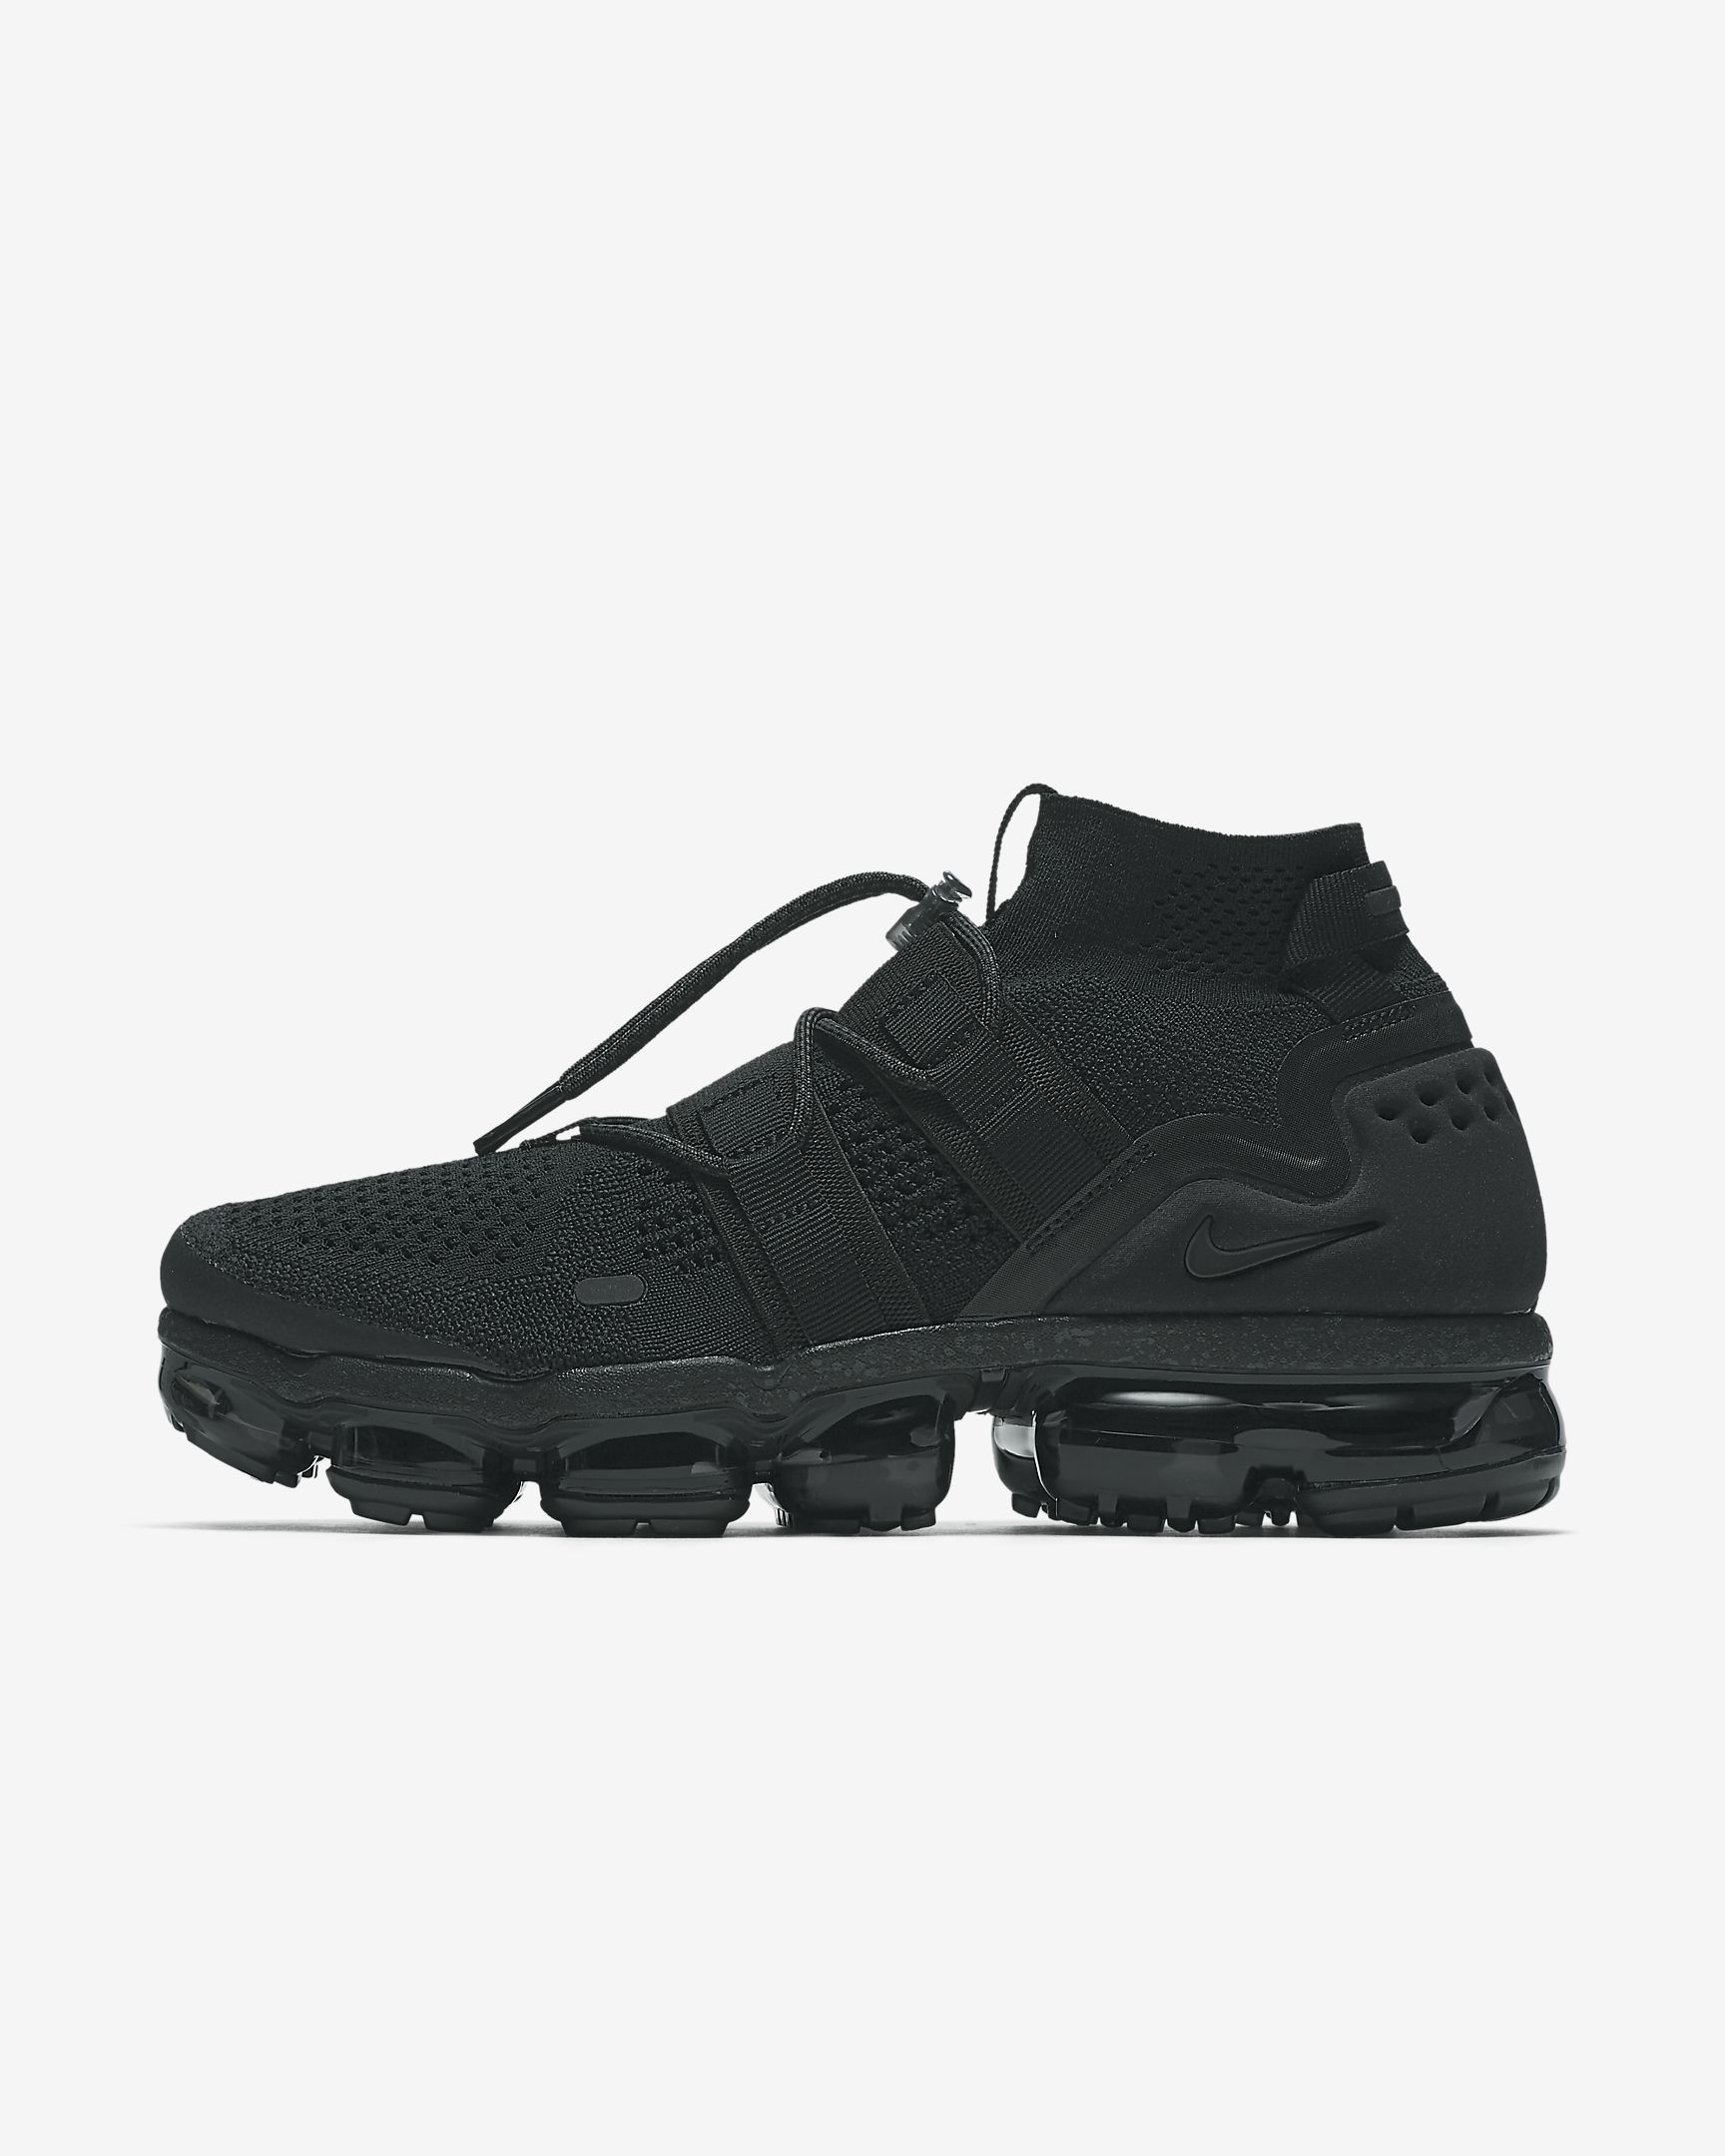 8a1fb956f20 Nike Air VaporMax Flyknit Utility Running Shoe